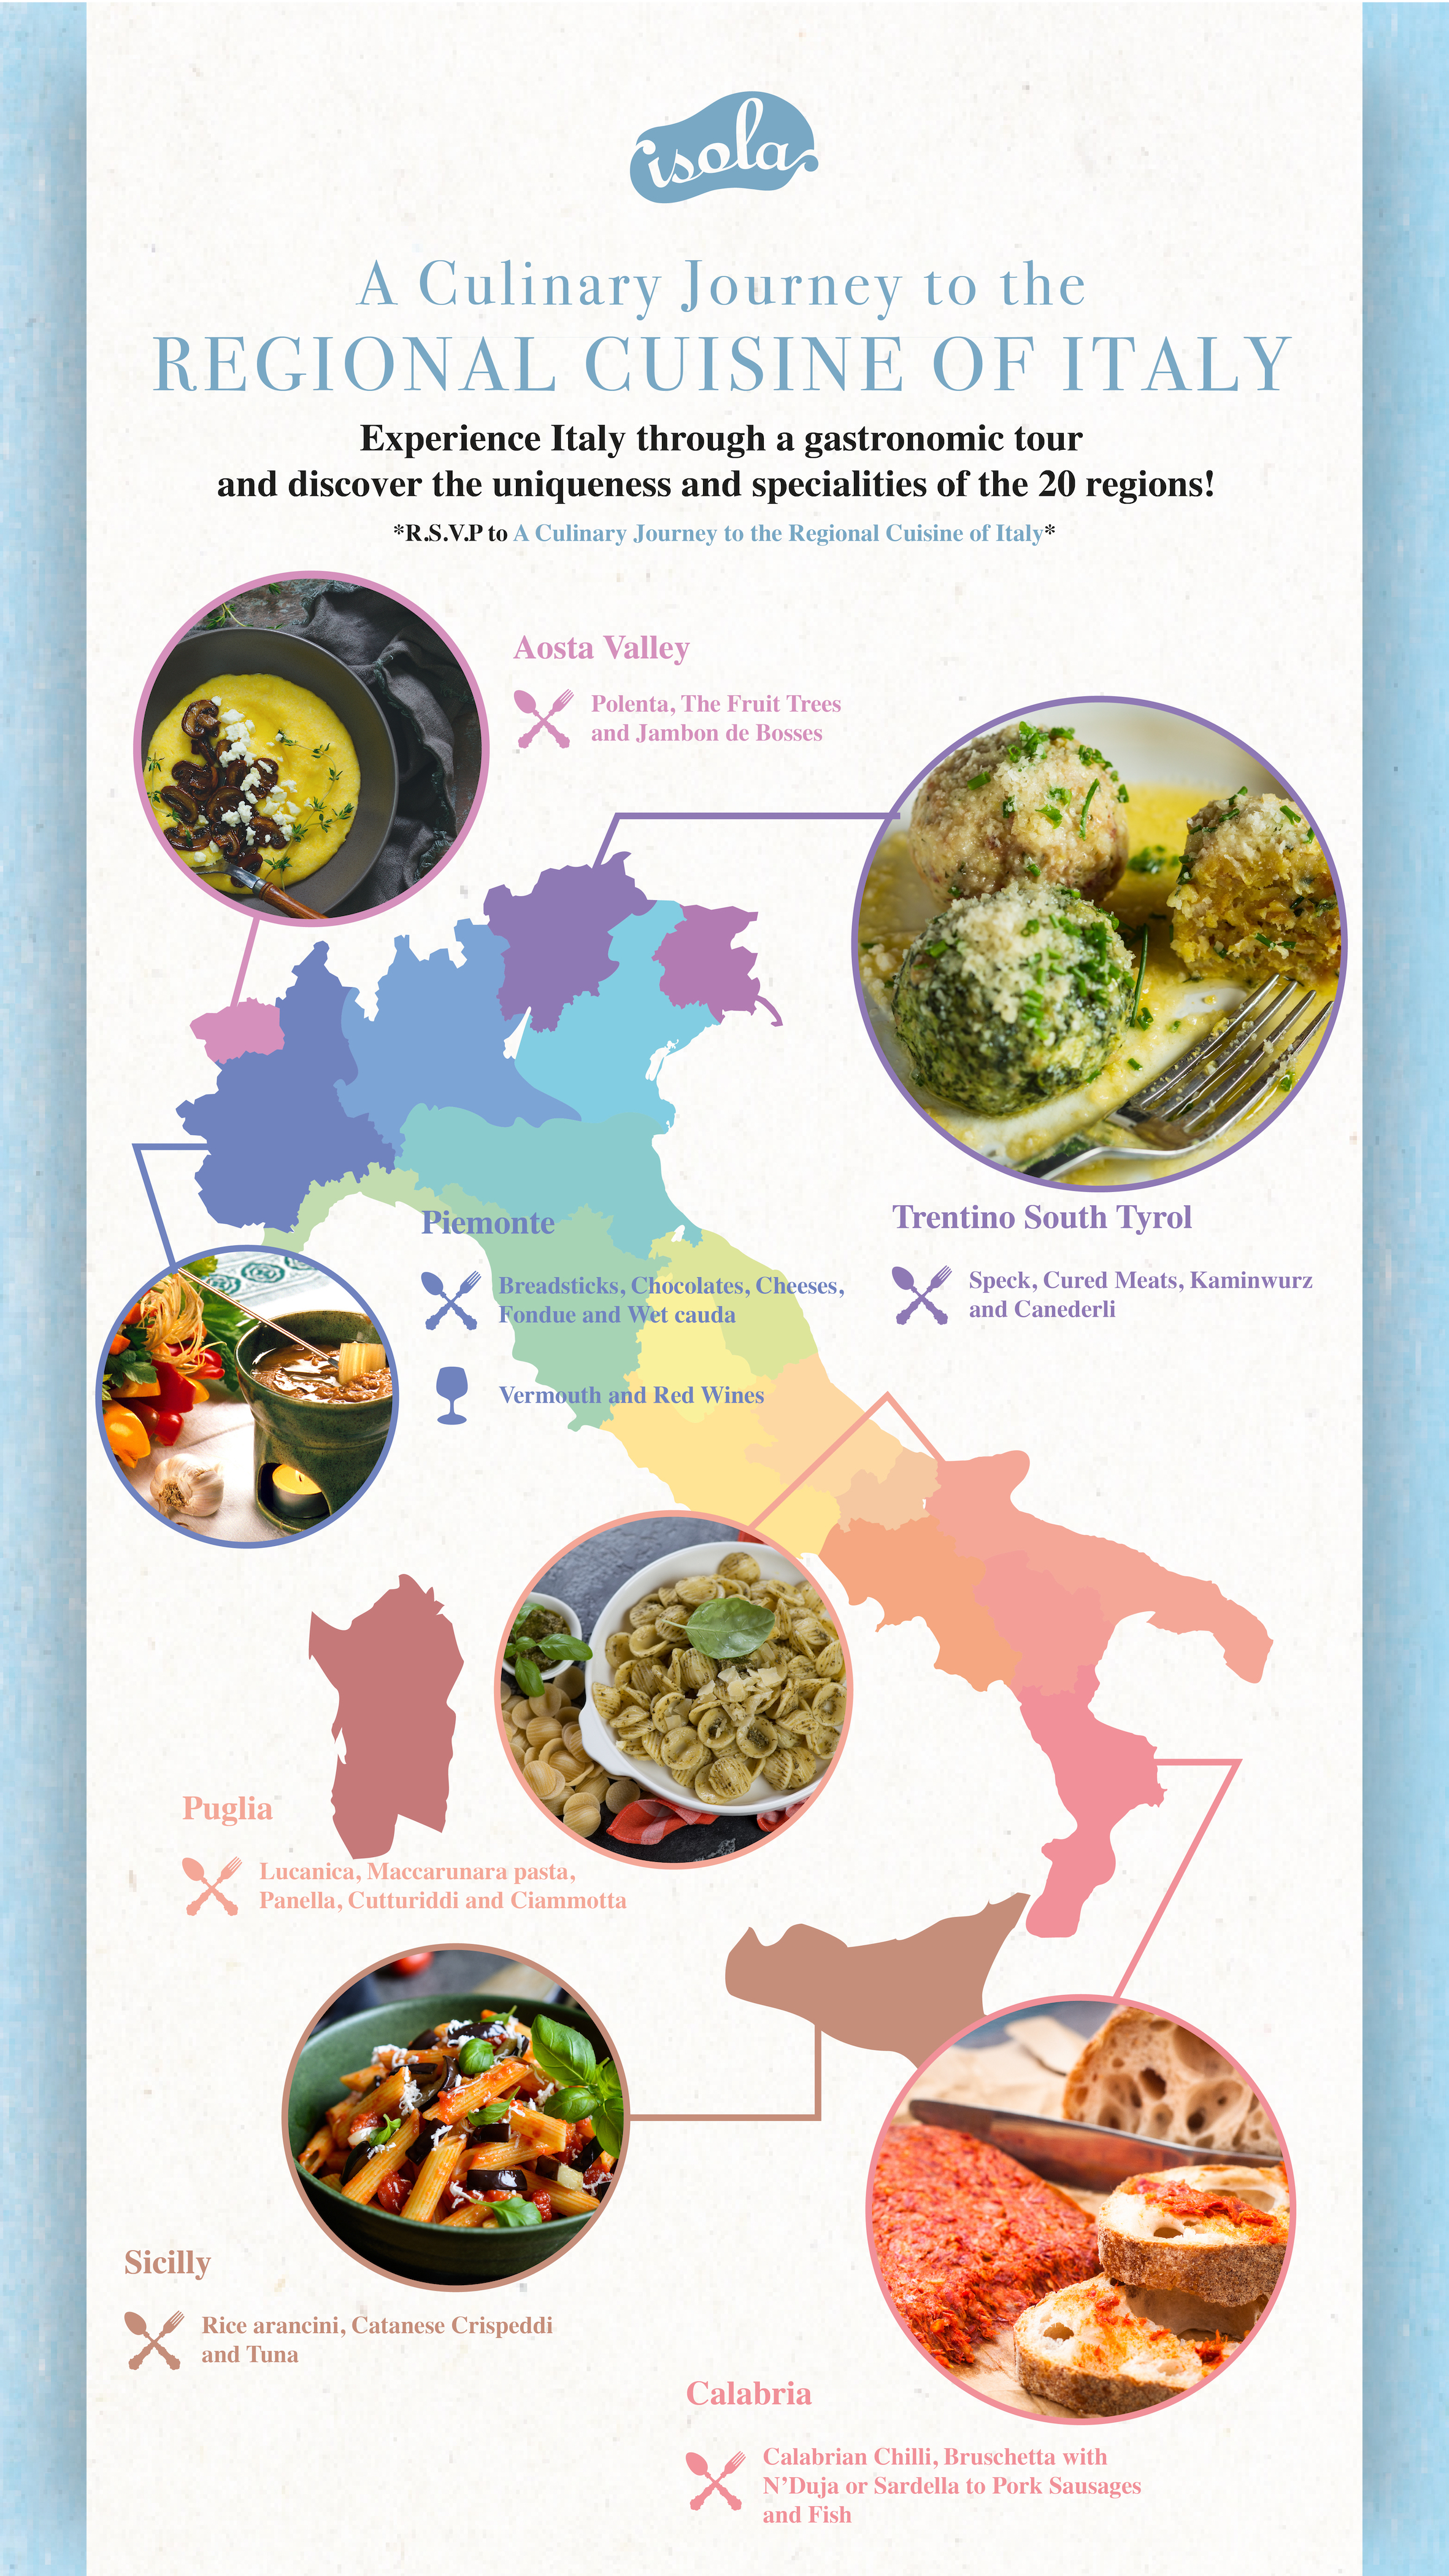 A Culinary Journey to the Regional Cuisine of Italy @ Isola